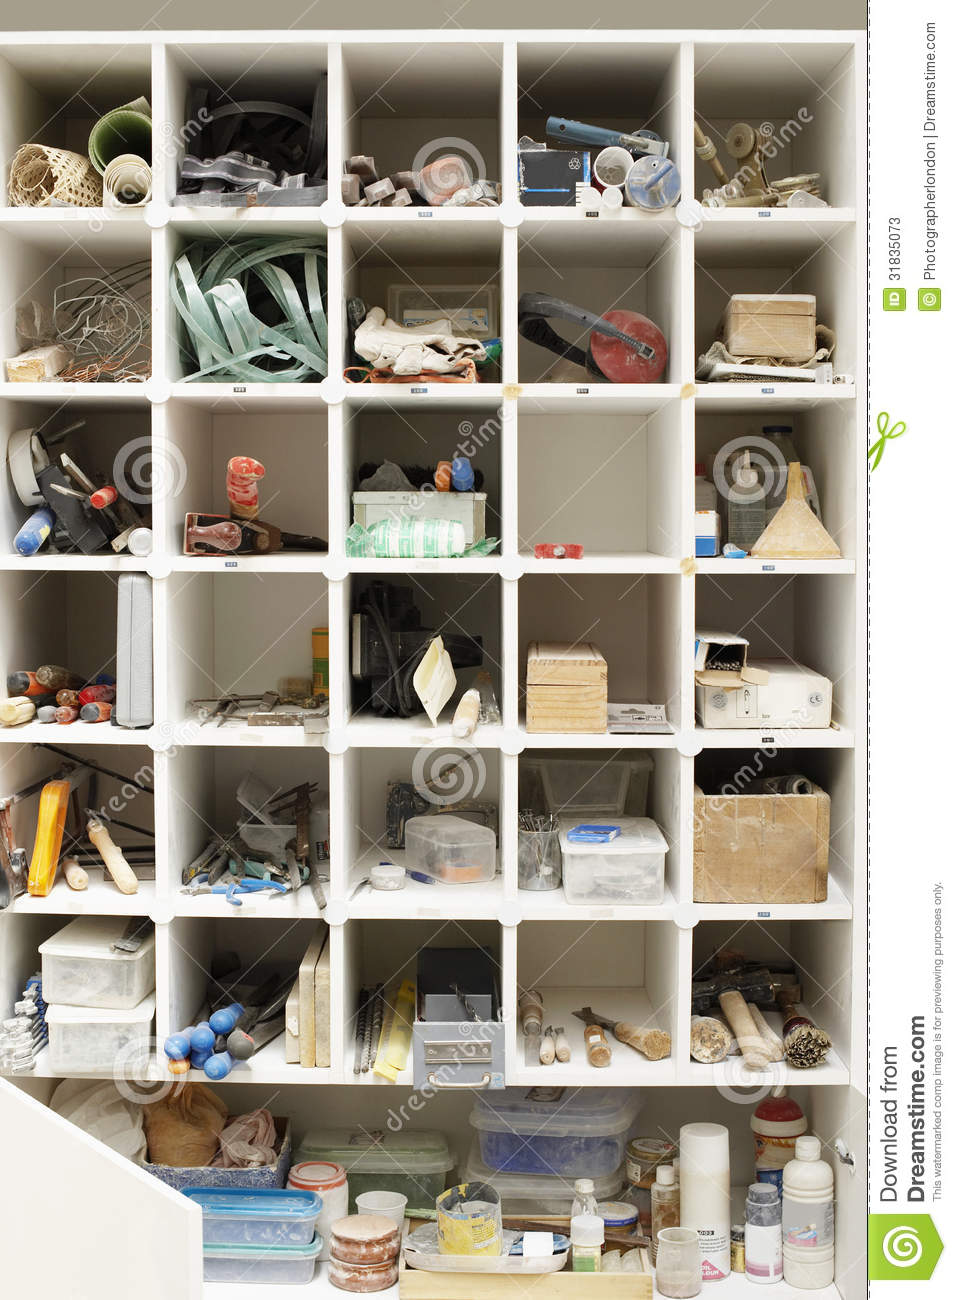 Tool Shelves Stock Image Image Of Industry, Convenience